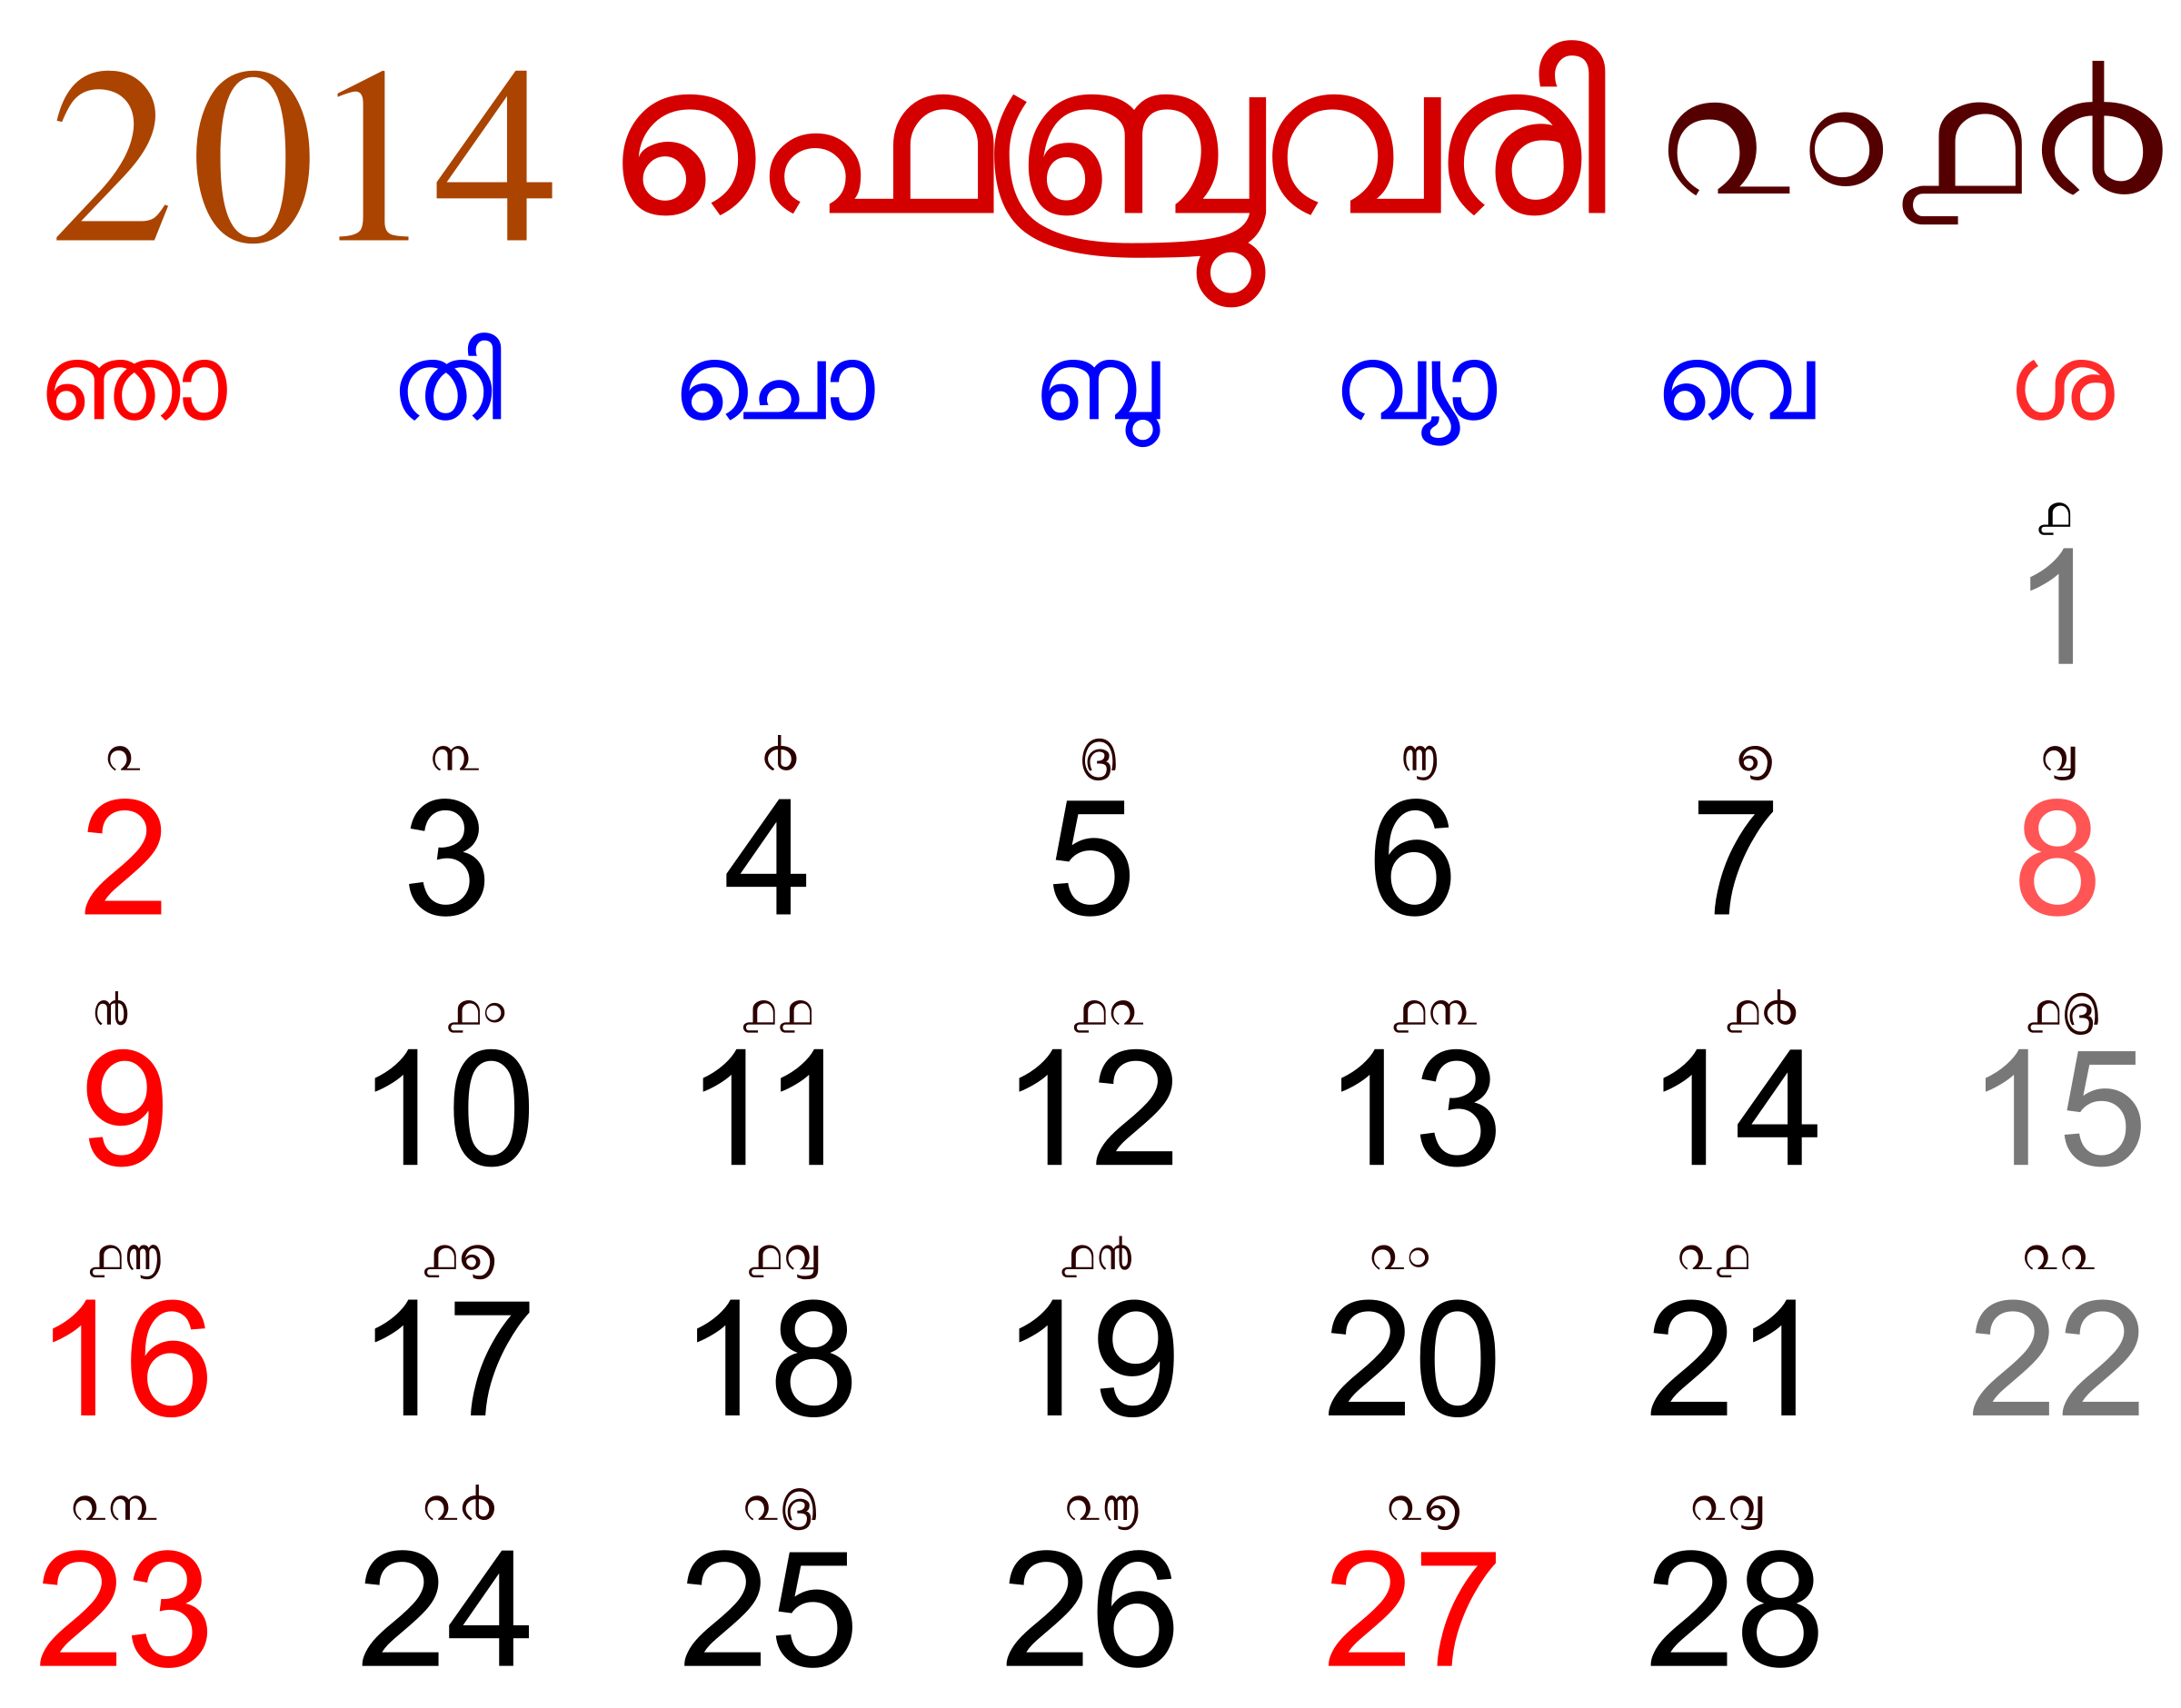 November calendar clipart 2015 clipart Clipart 2014 February Calendar For Kerala With Malayalam Digits Fine ... clipart